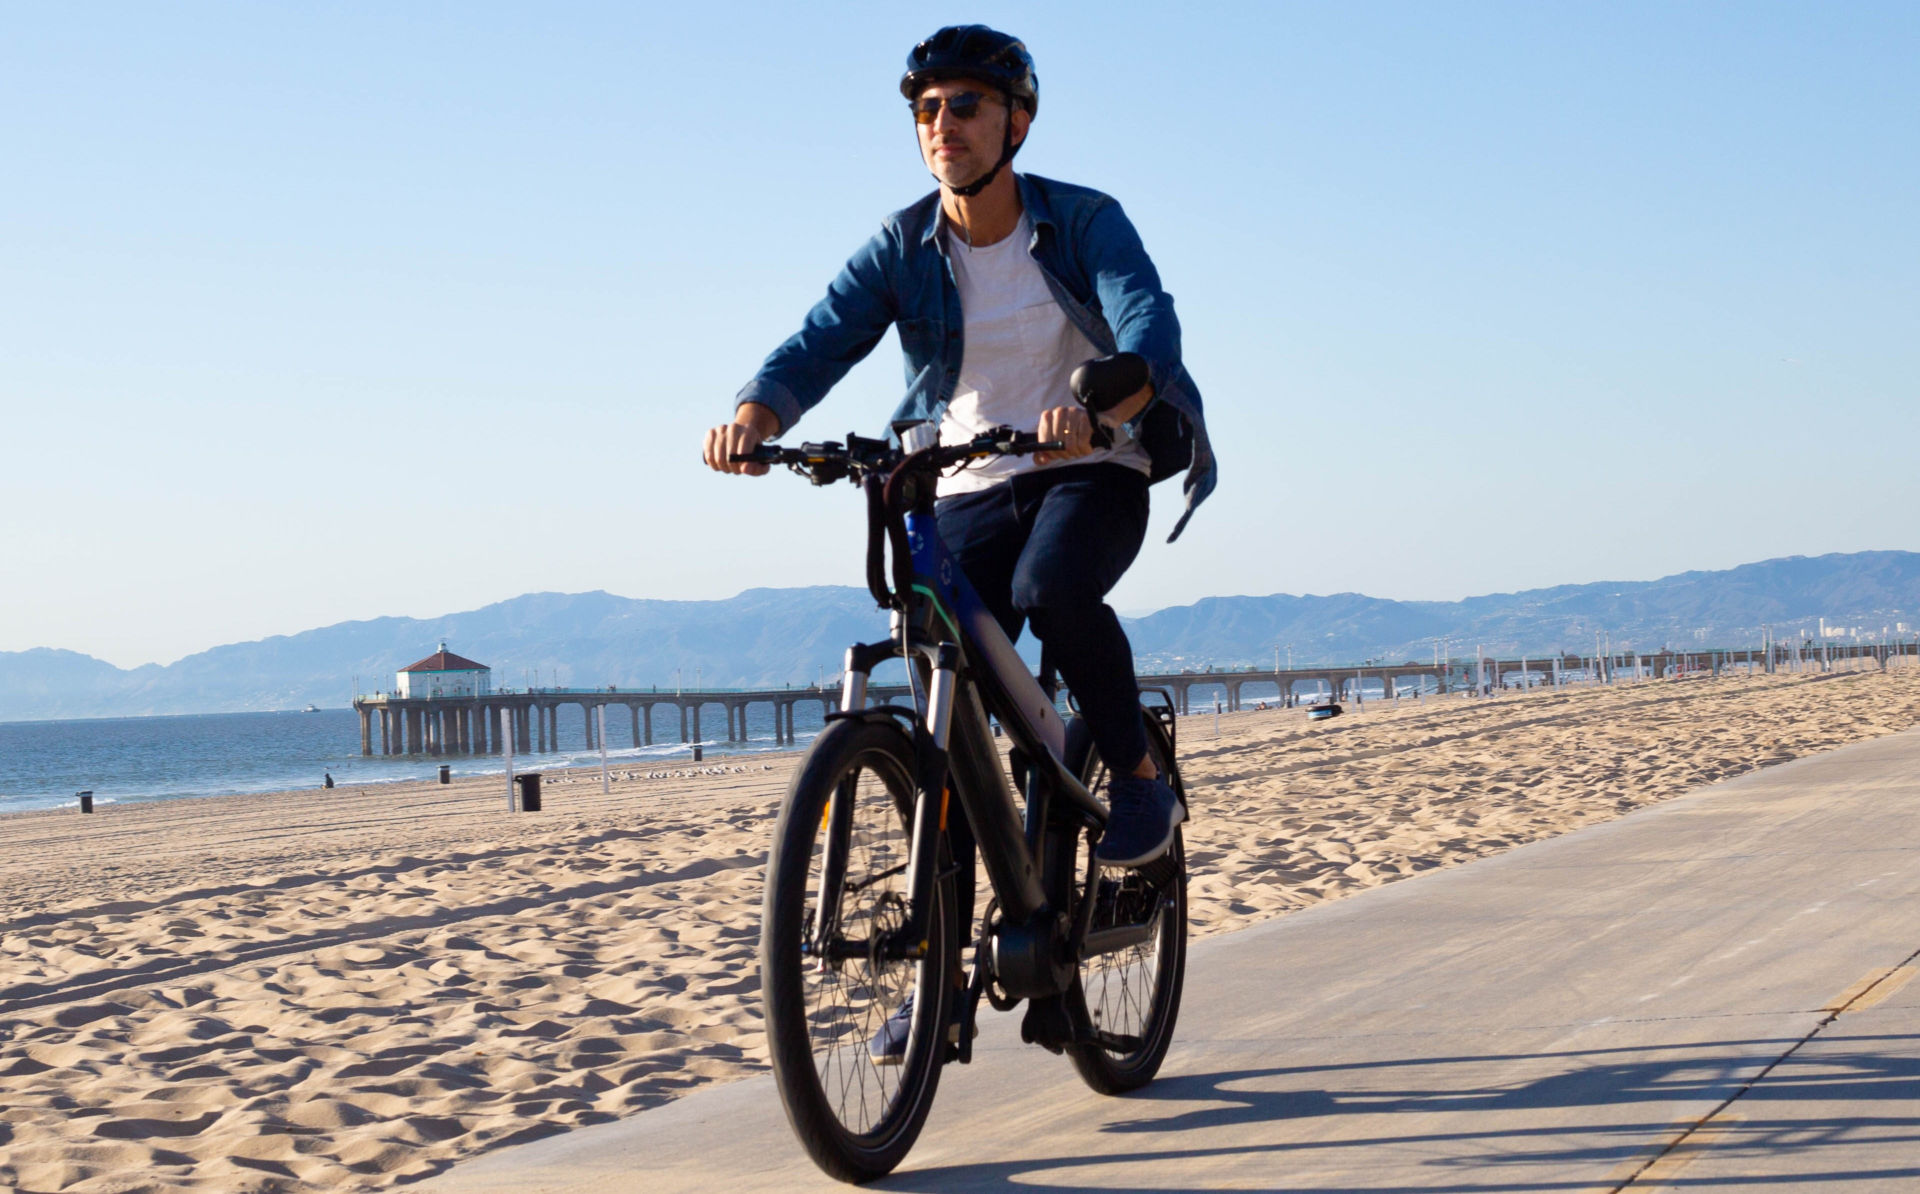 A rider on a FUELL Flluid-1S electric bicycle. Photo courtesy FUELL.